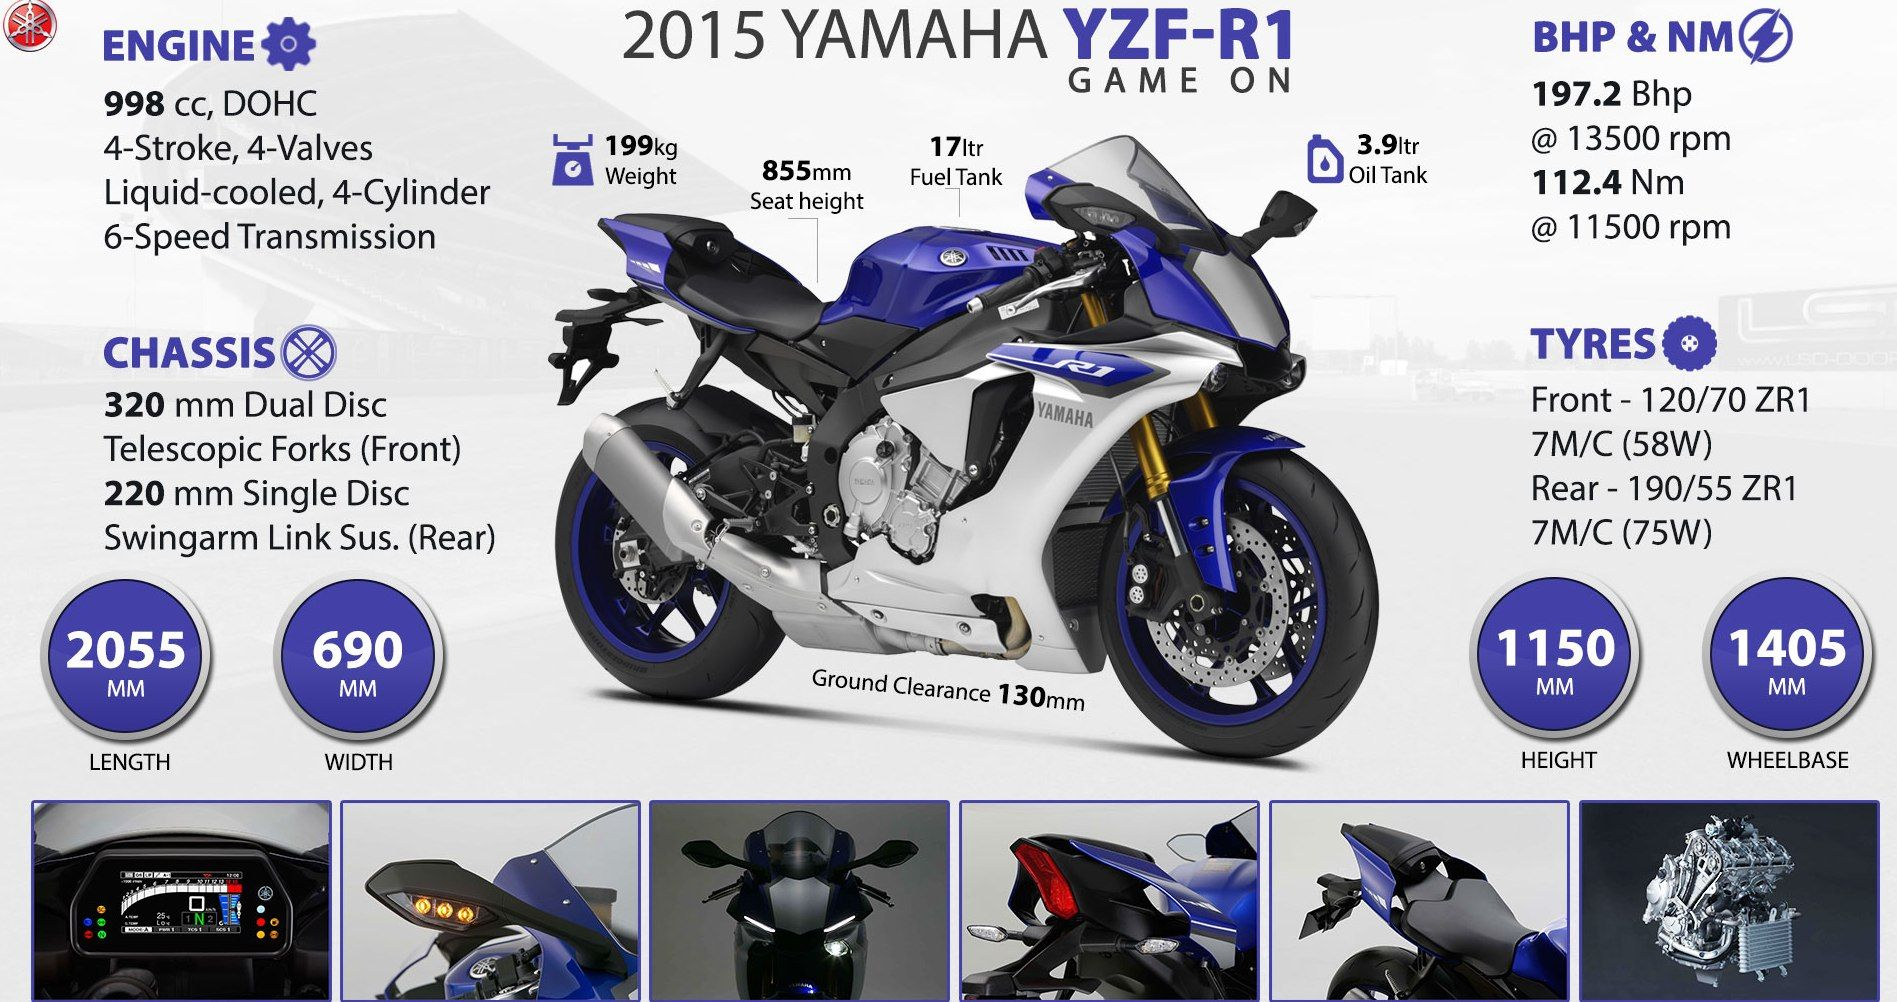 Recently launched yamaha motor new yamaha yzf r1 bike in india it is fantastic bike for mileage good performance comfort and design by innovativ